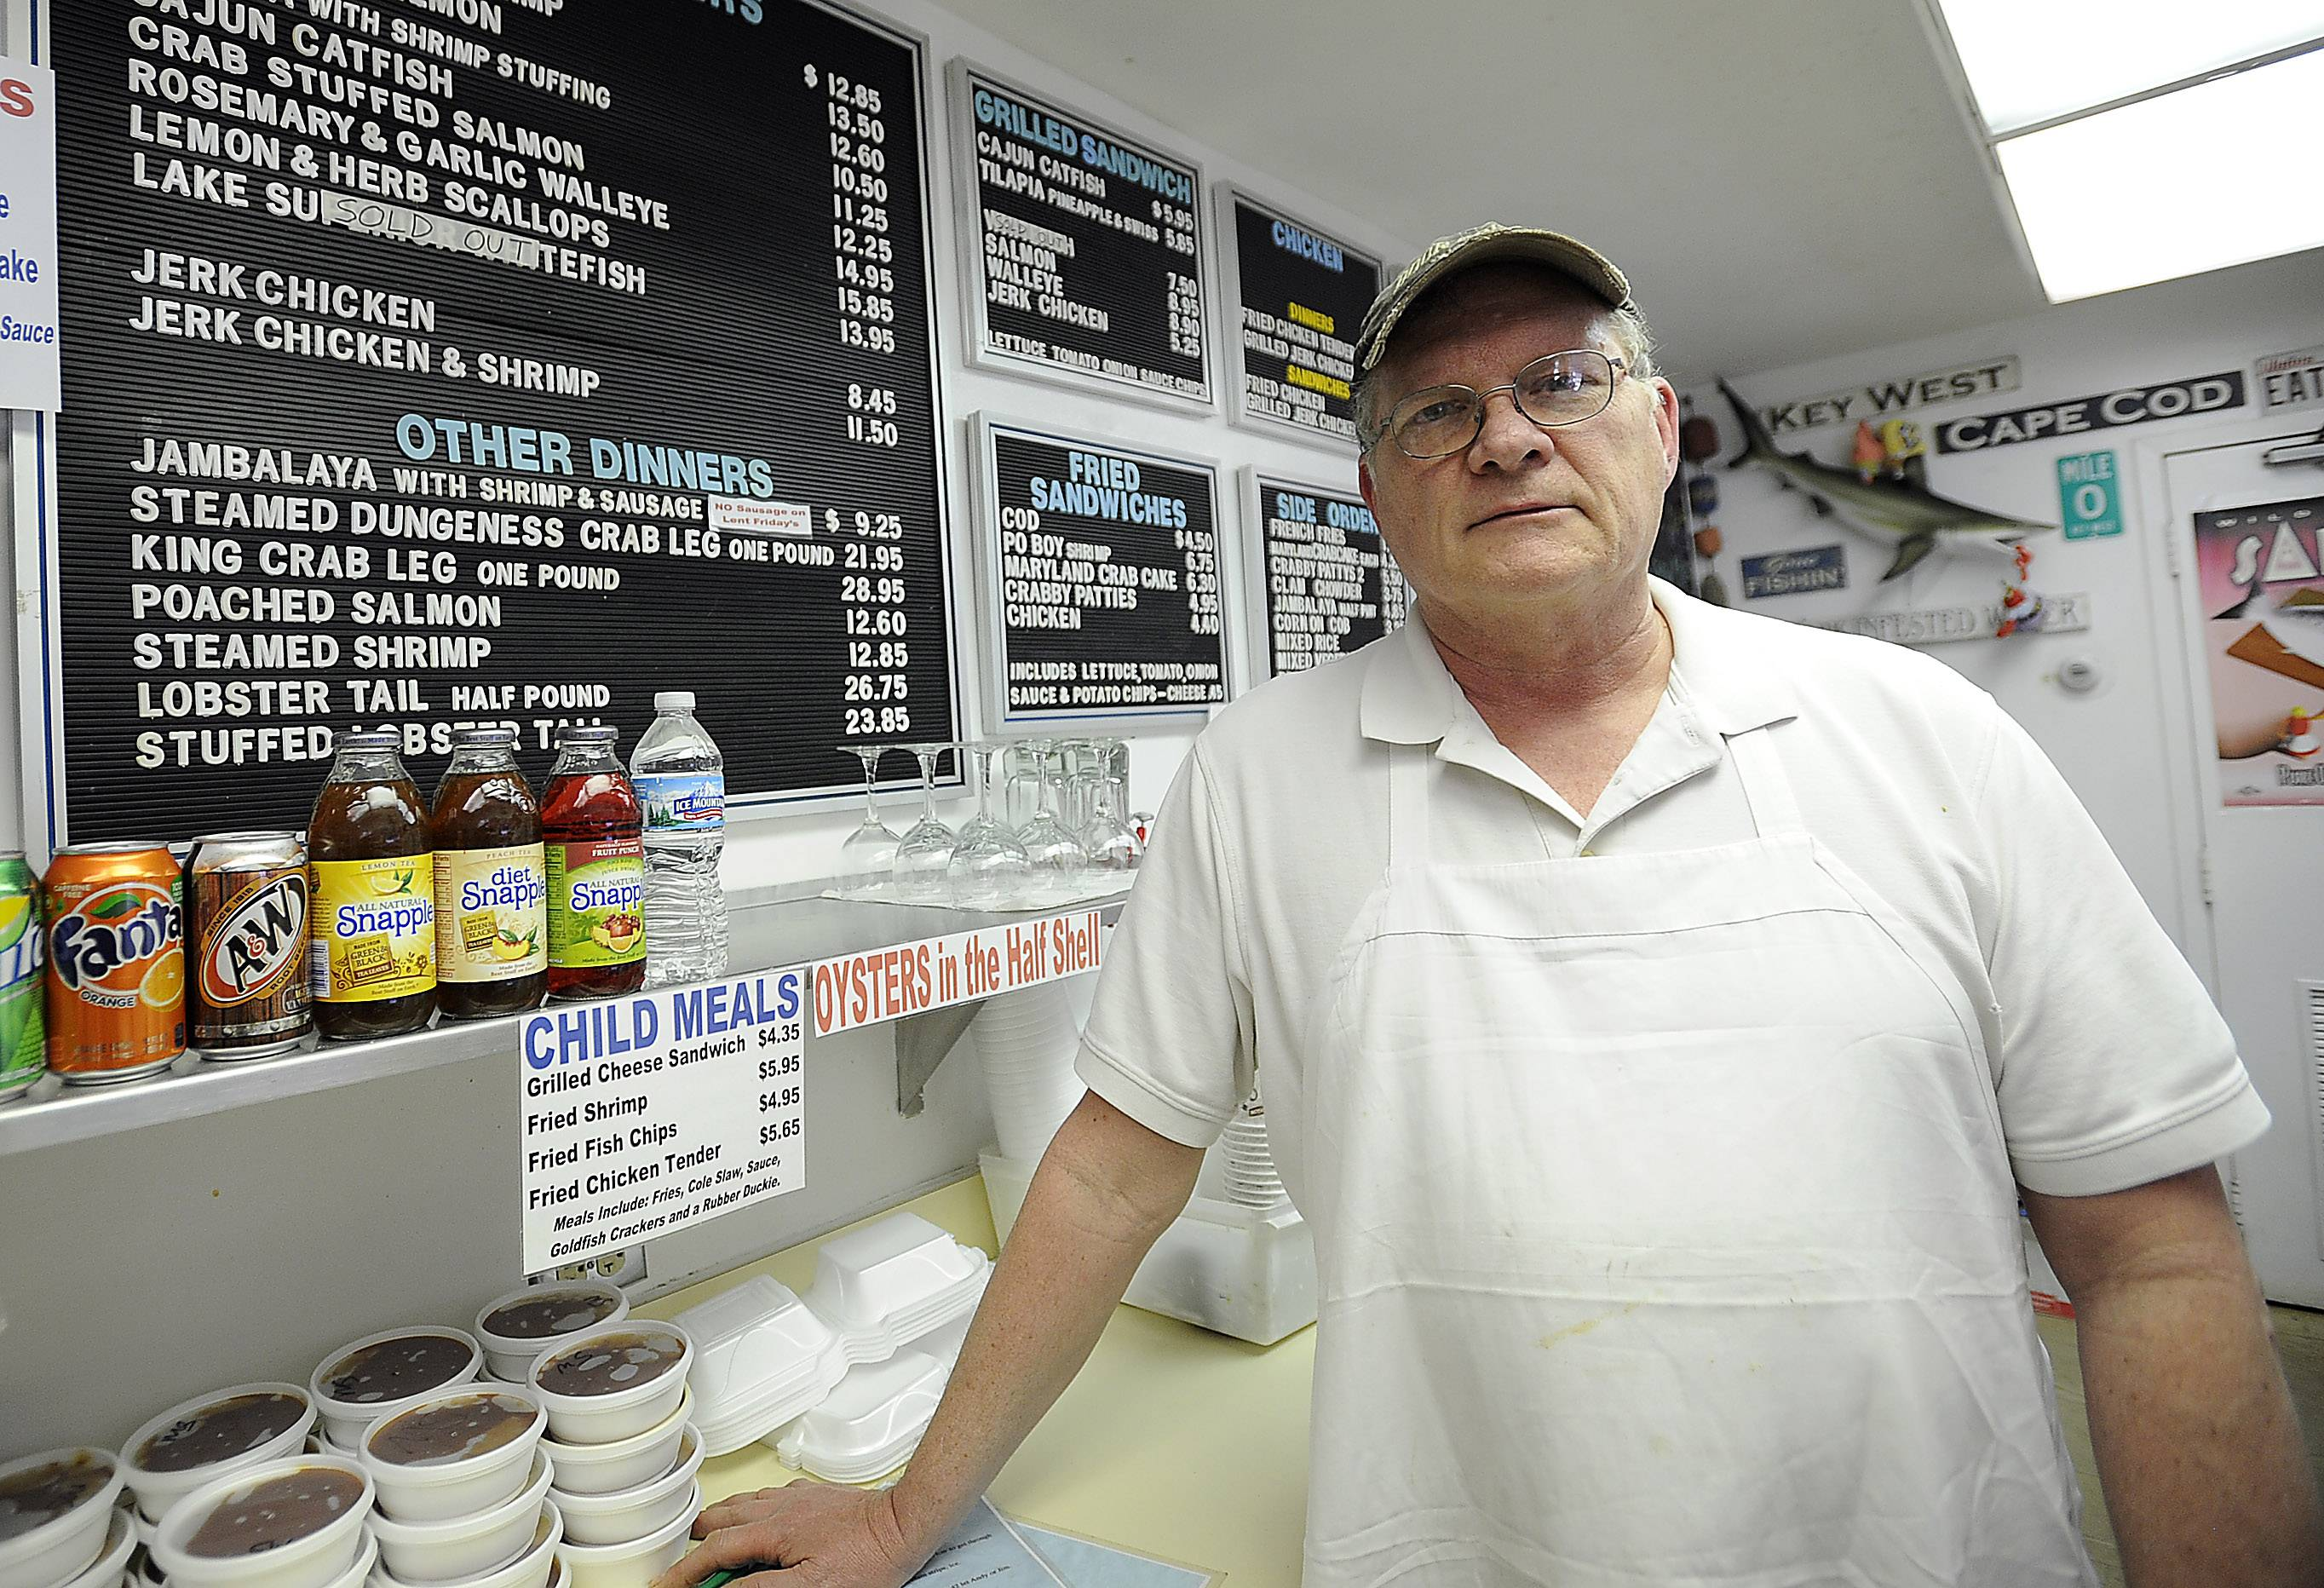 Andy Johnson, owner of Don's Dock in Des Plaines, stands next to his menu sign showing that Lake Superior whitefish is sold out. Whitefish is a traditional Passover food, but it's been difficult to find in stock because of fishermen's difficulty with the rough winter.